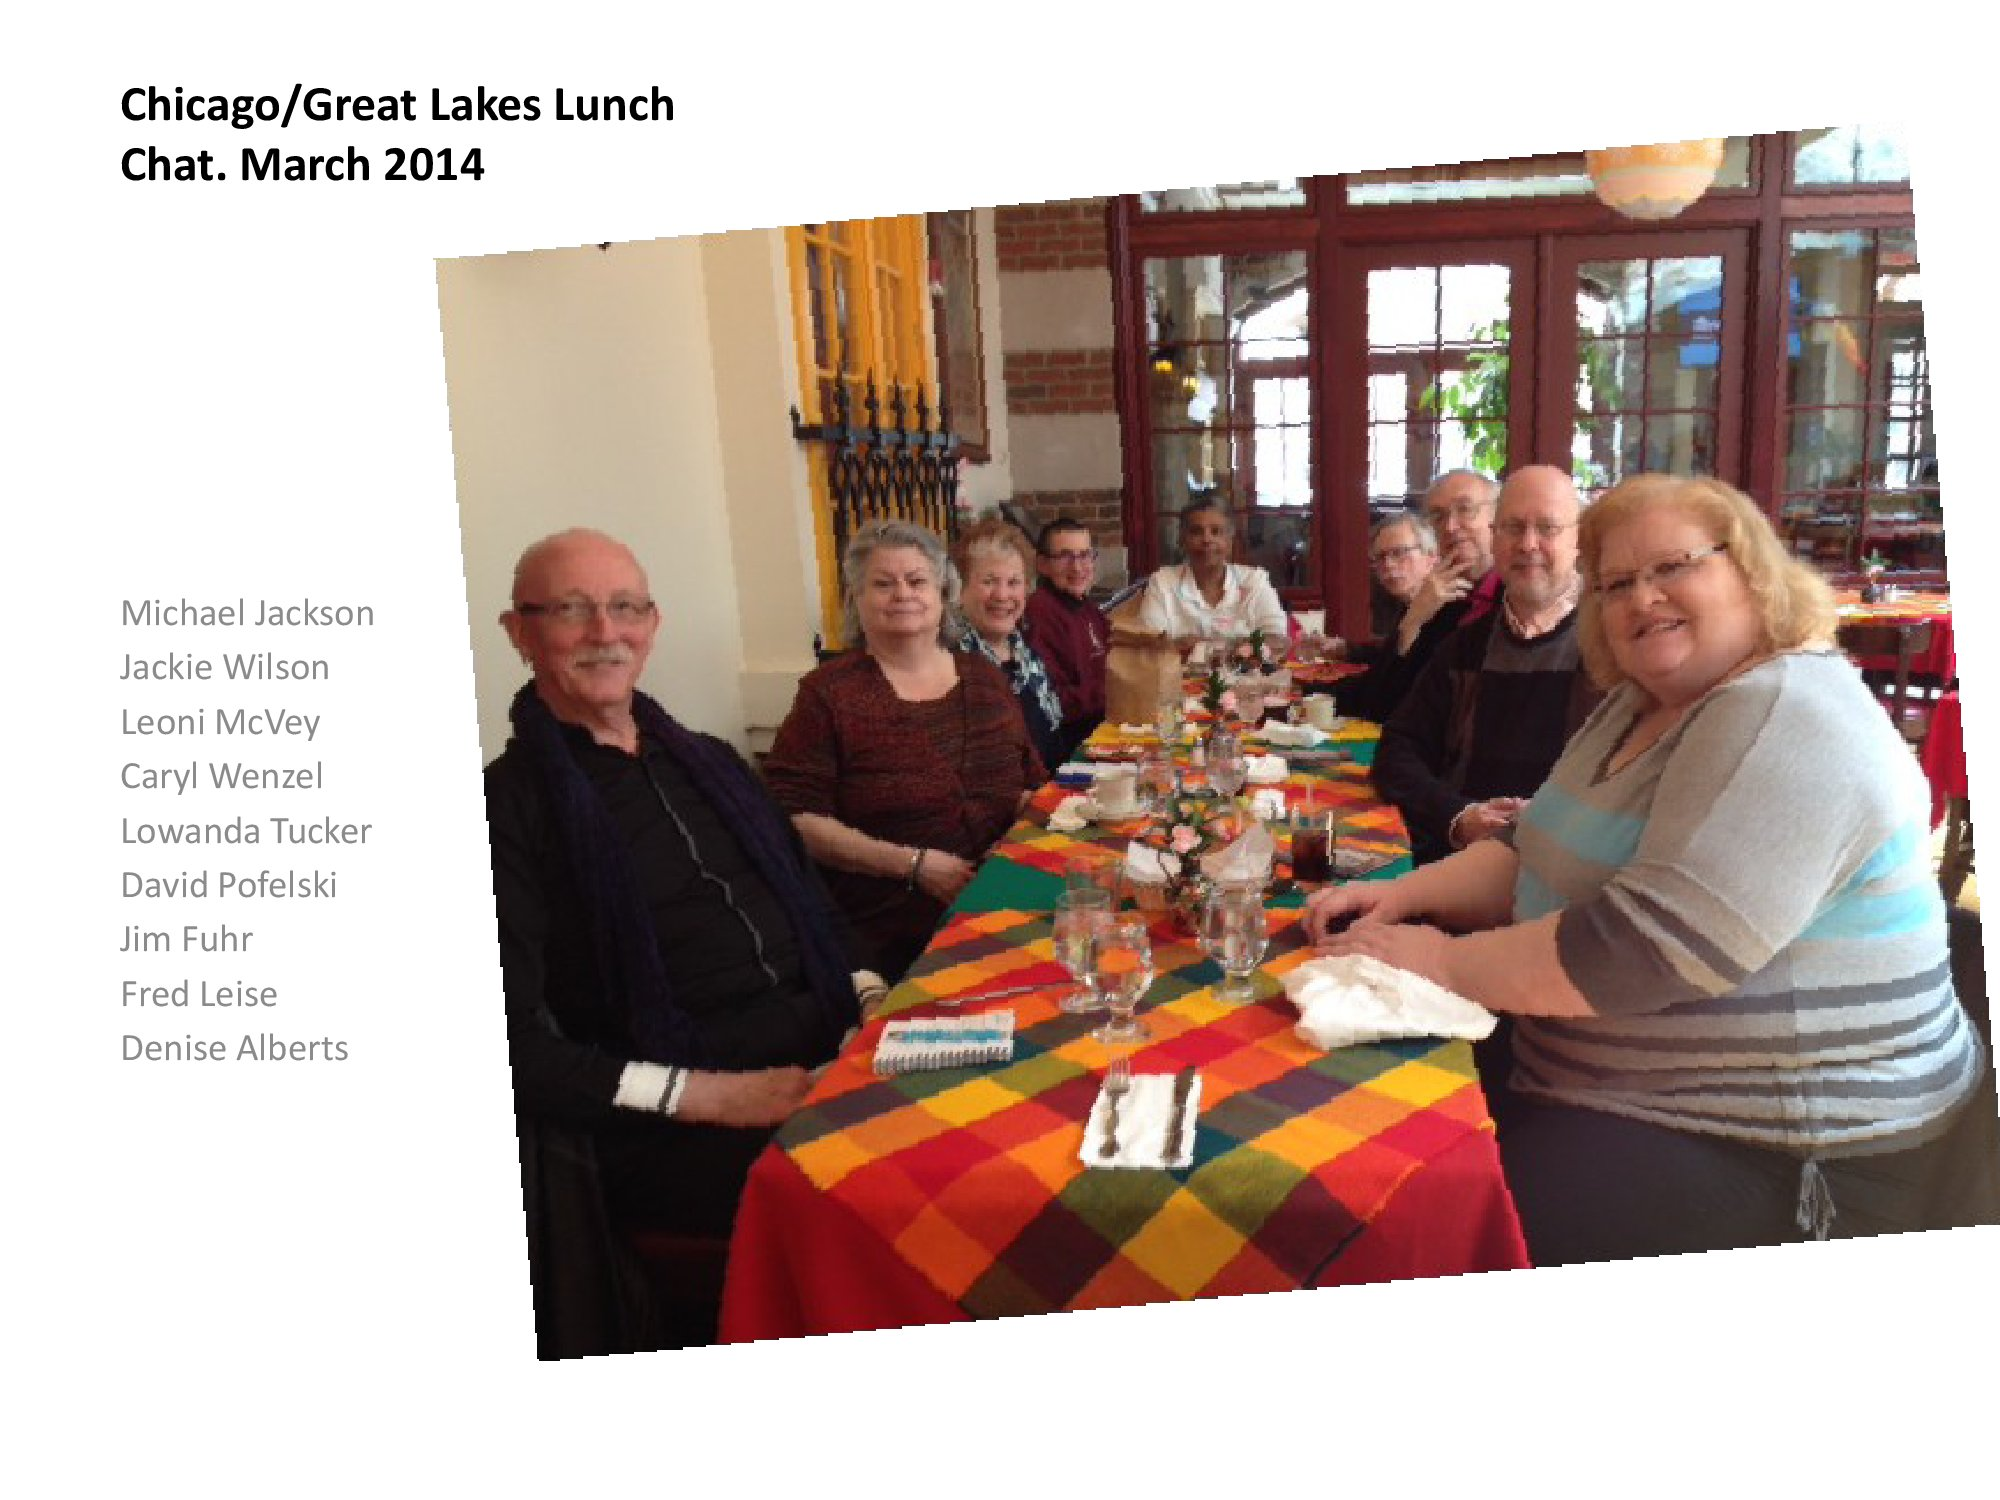 March 2014 Lunch Chat